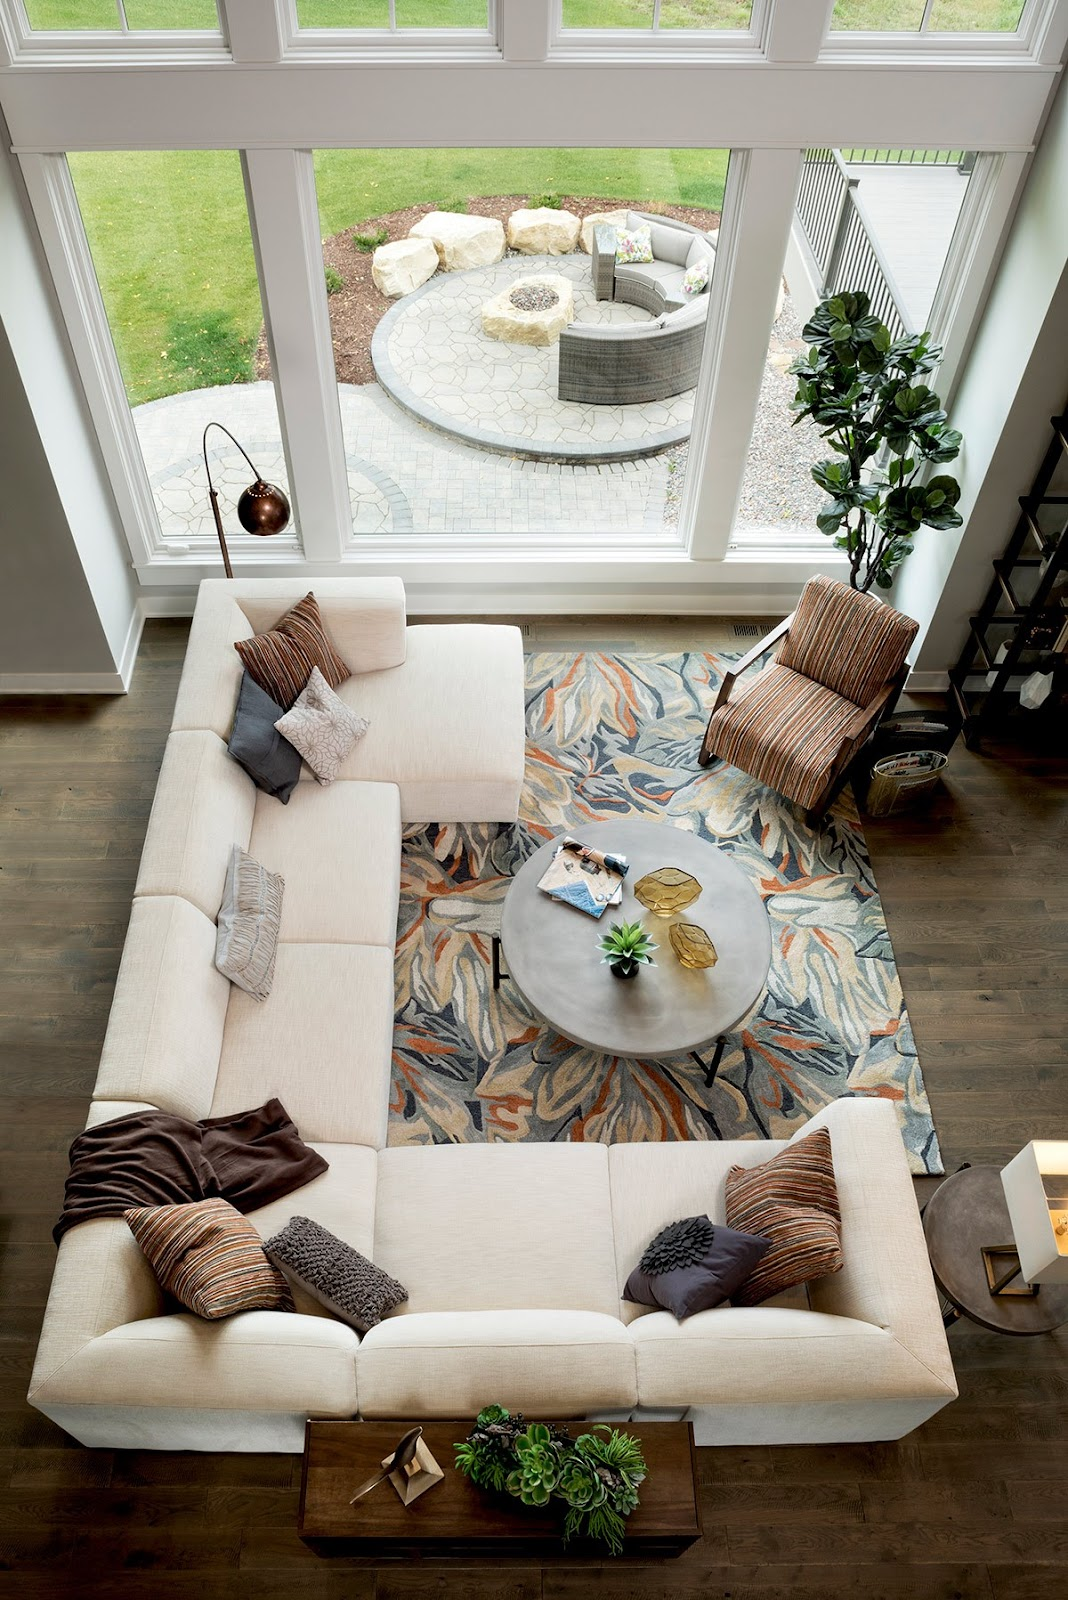 Sectional vs Sofa: How to Pick the Best ...blog.modsy.com